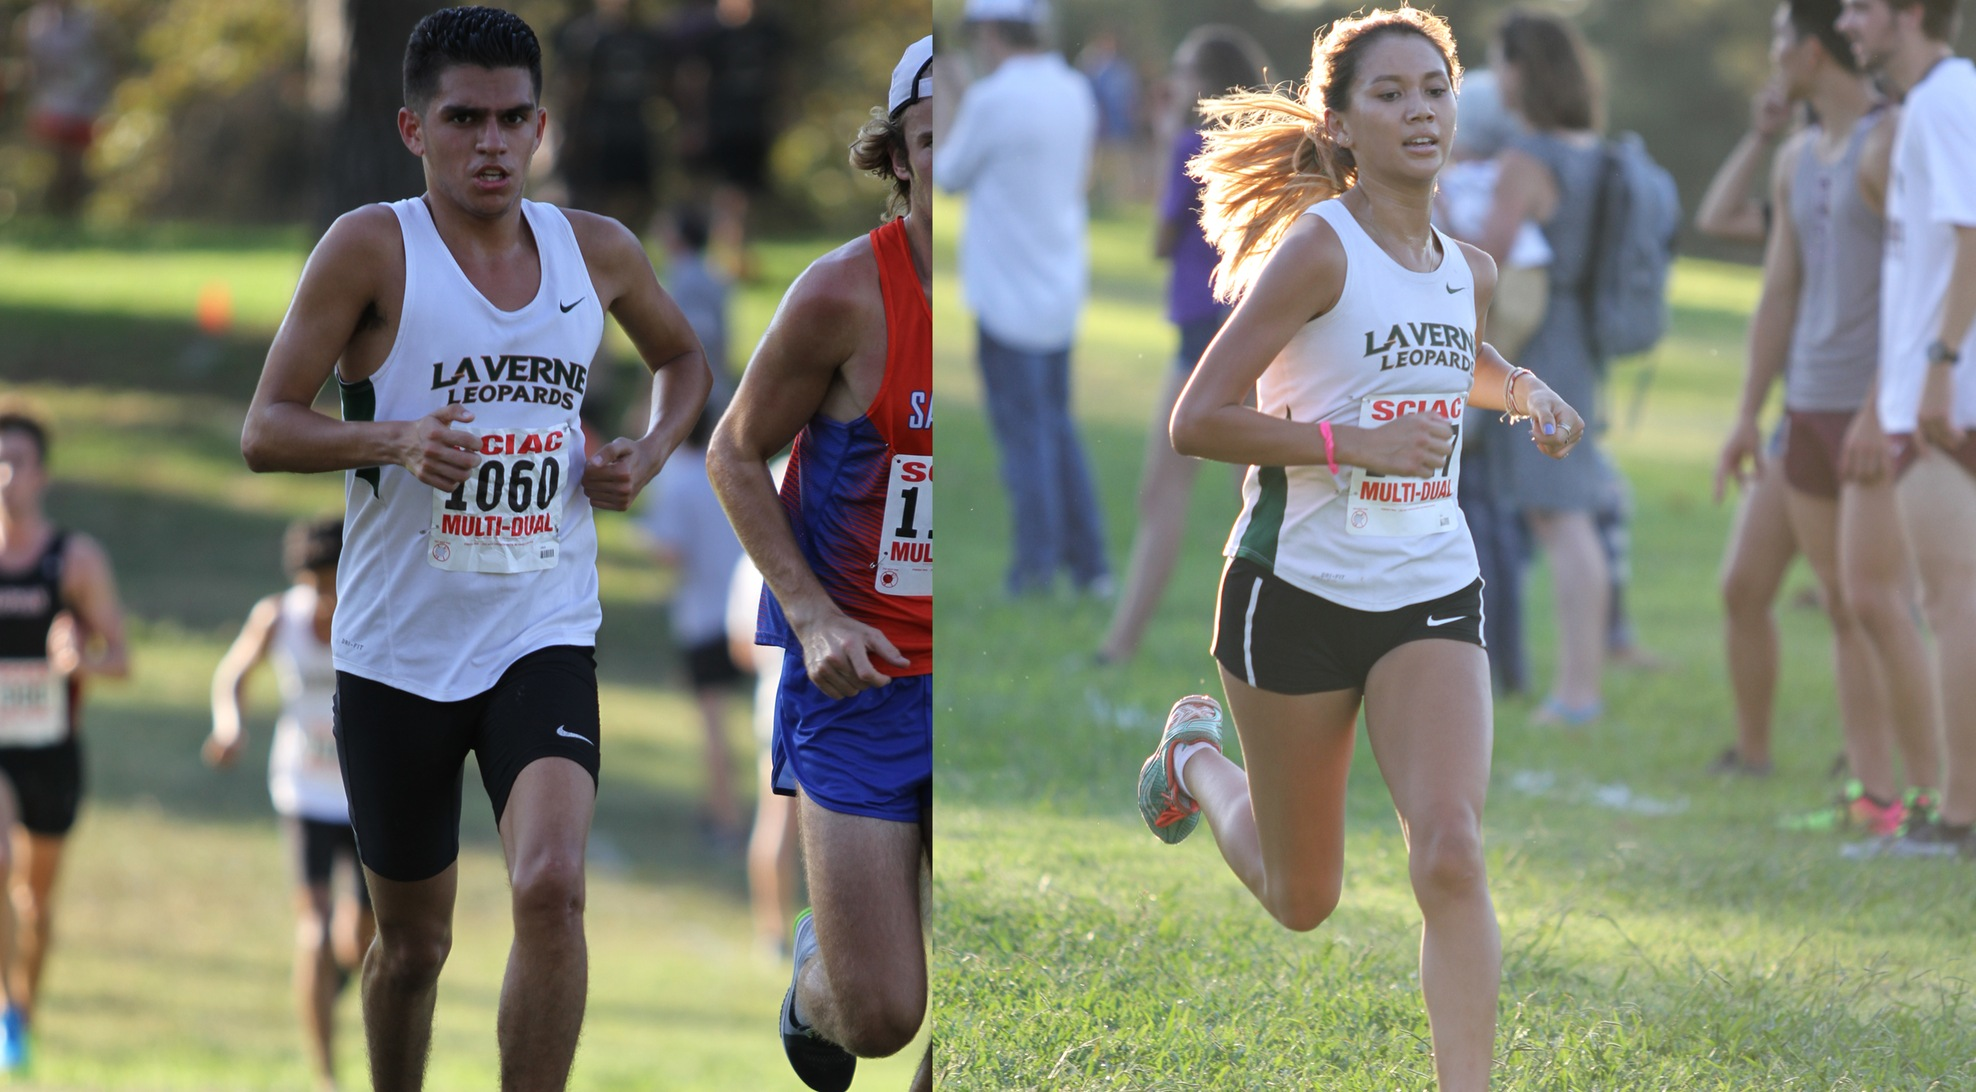 Cerrillos earns All-Region honors at NCAA West Regional